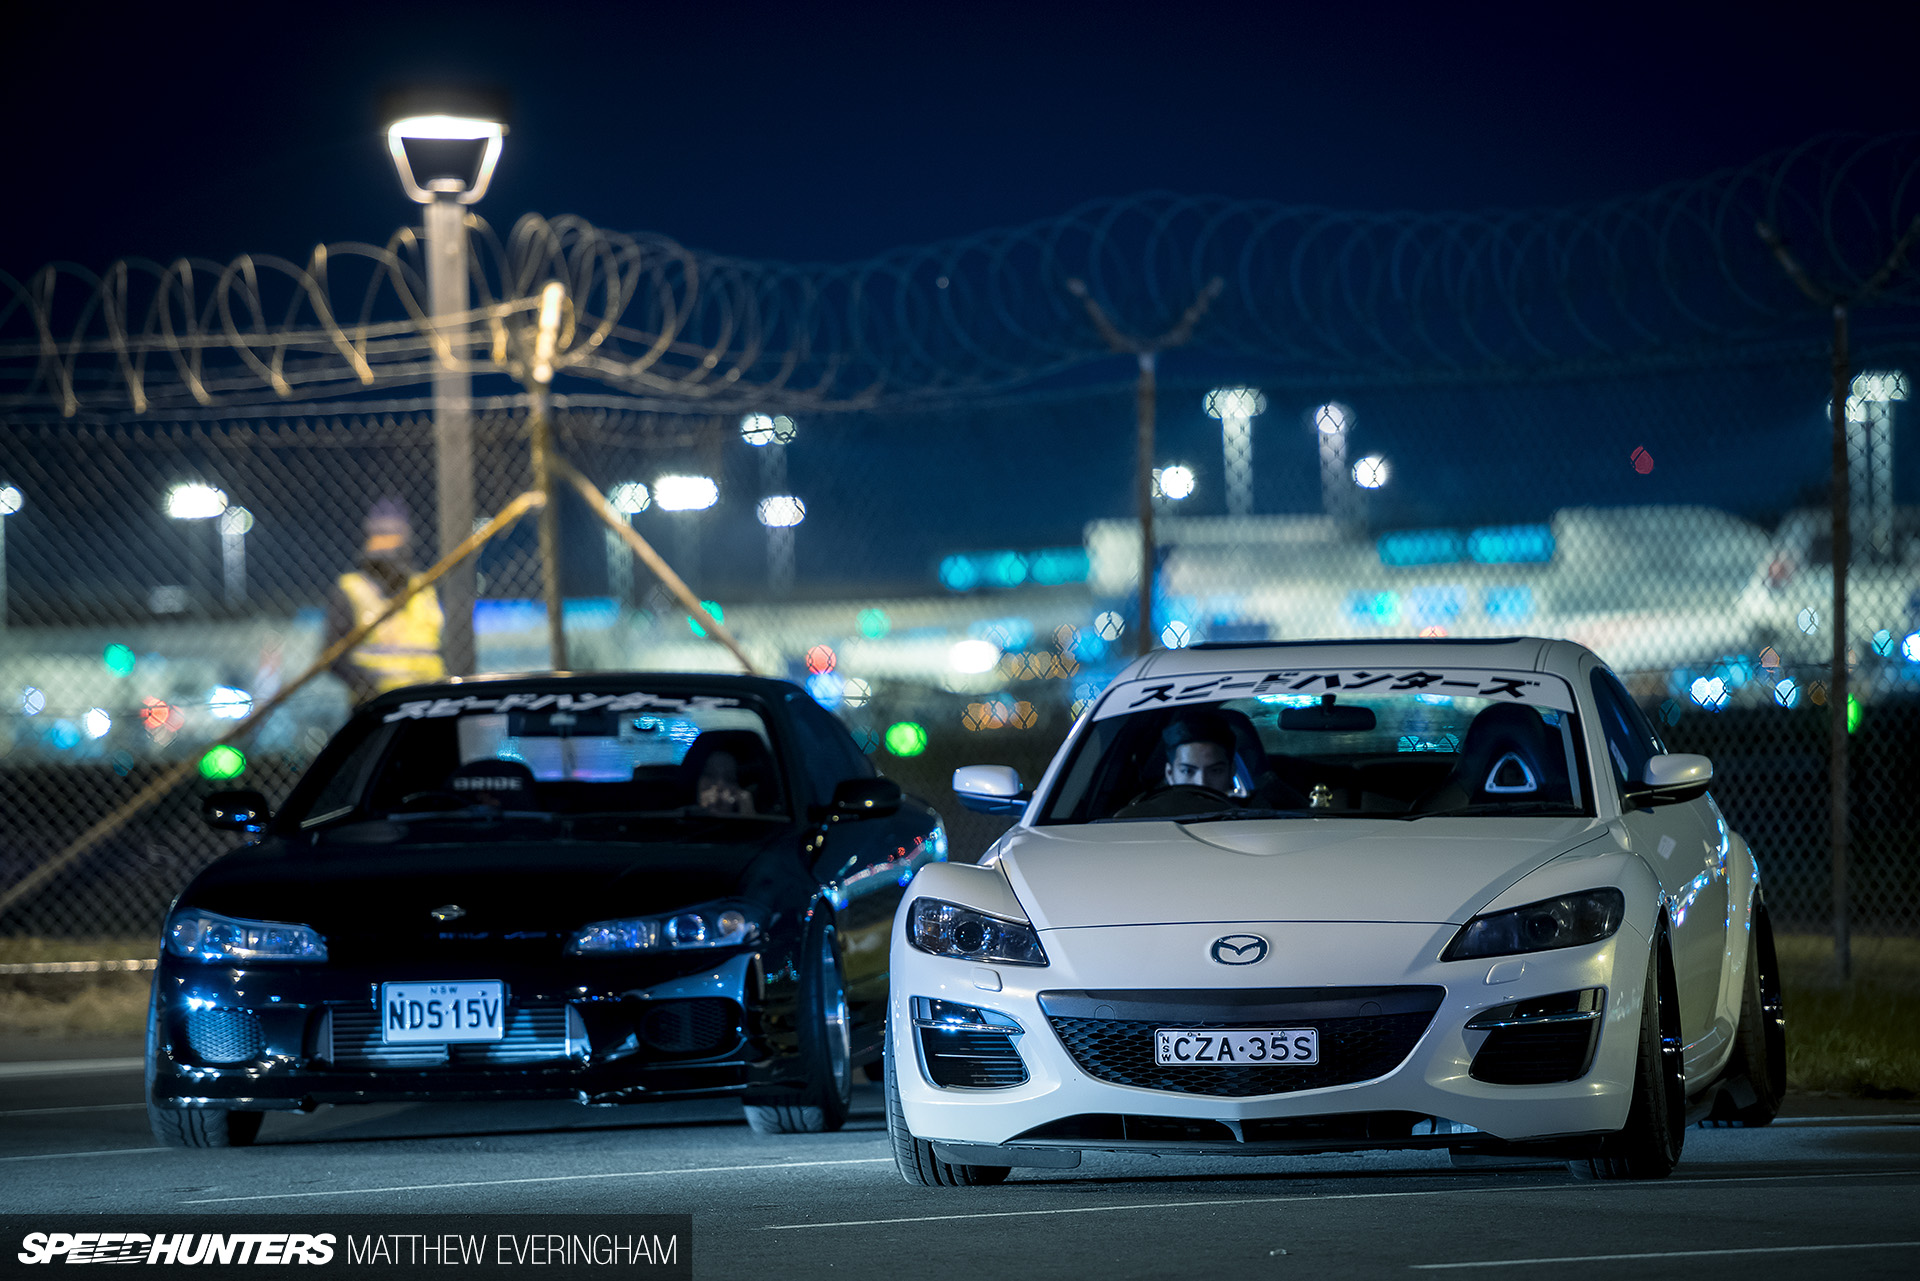 [Image: MatthewEveringham_Speedhunters_Fitted2017-17.jpg]